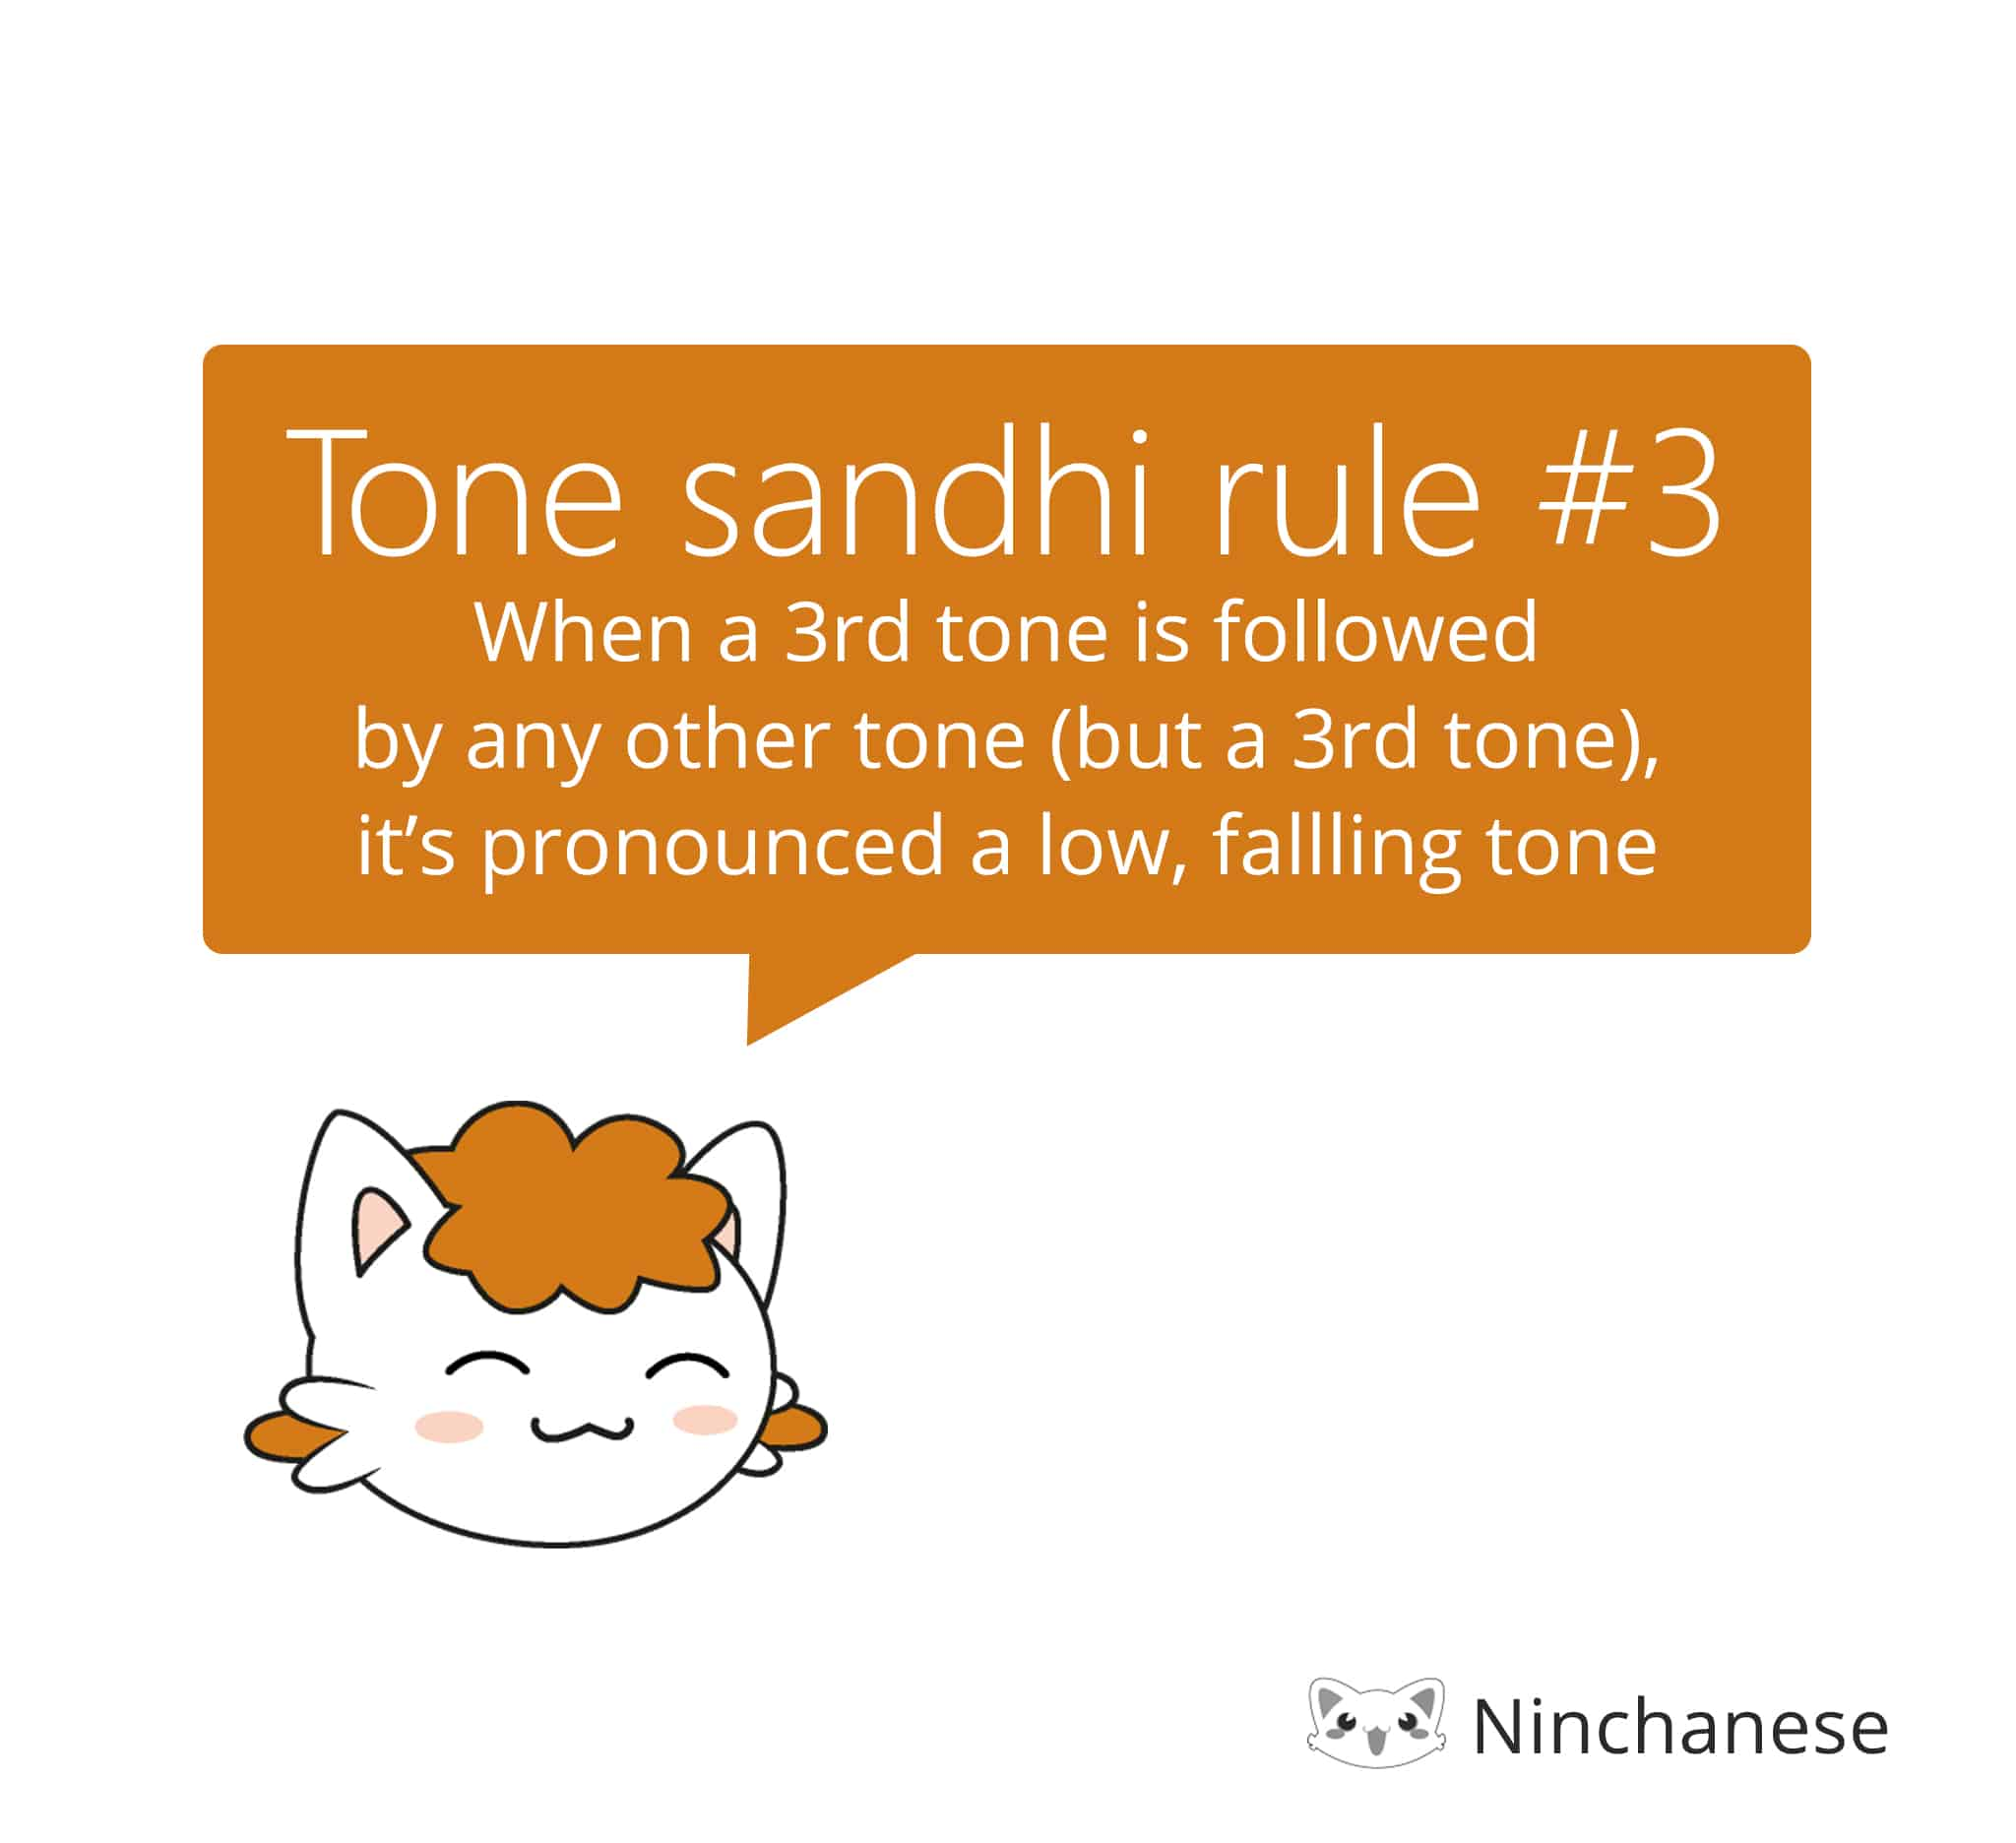 Tone sandhi rules for the third tone in Mandarin